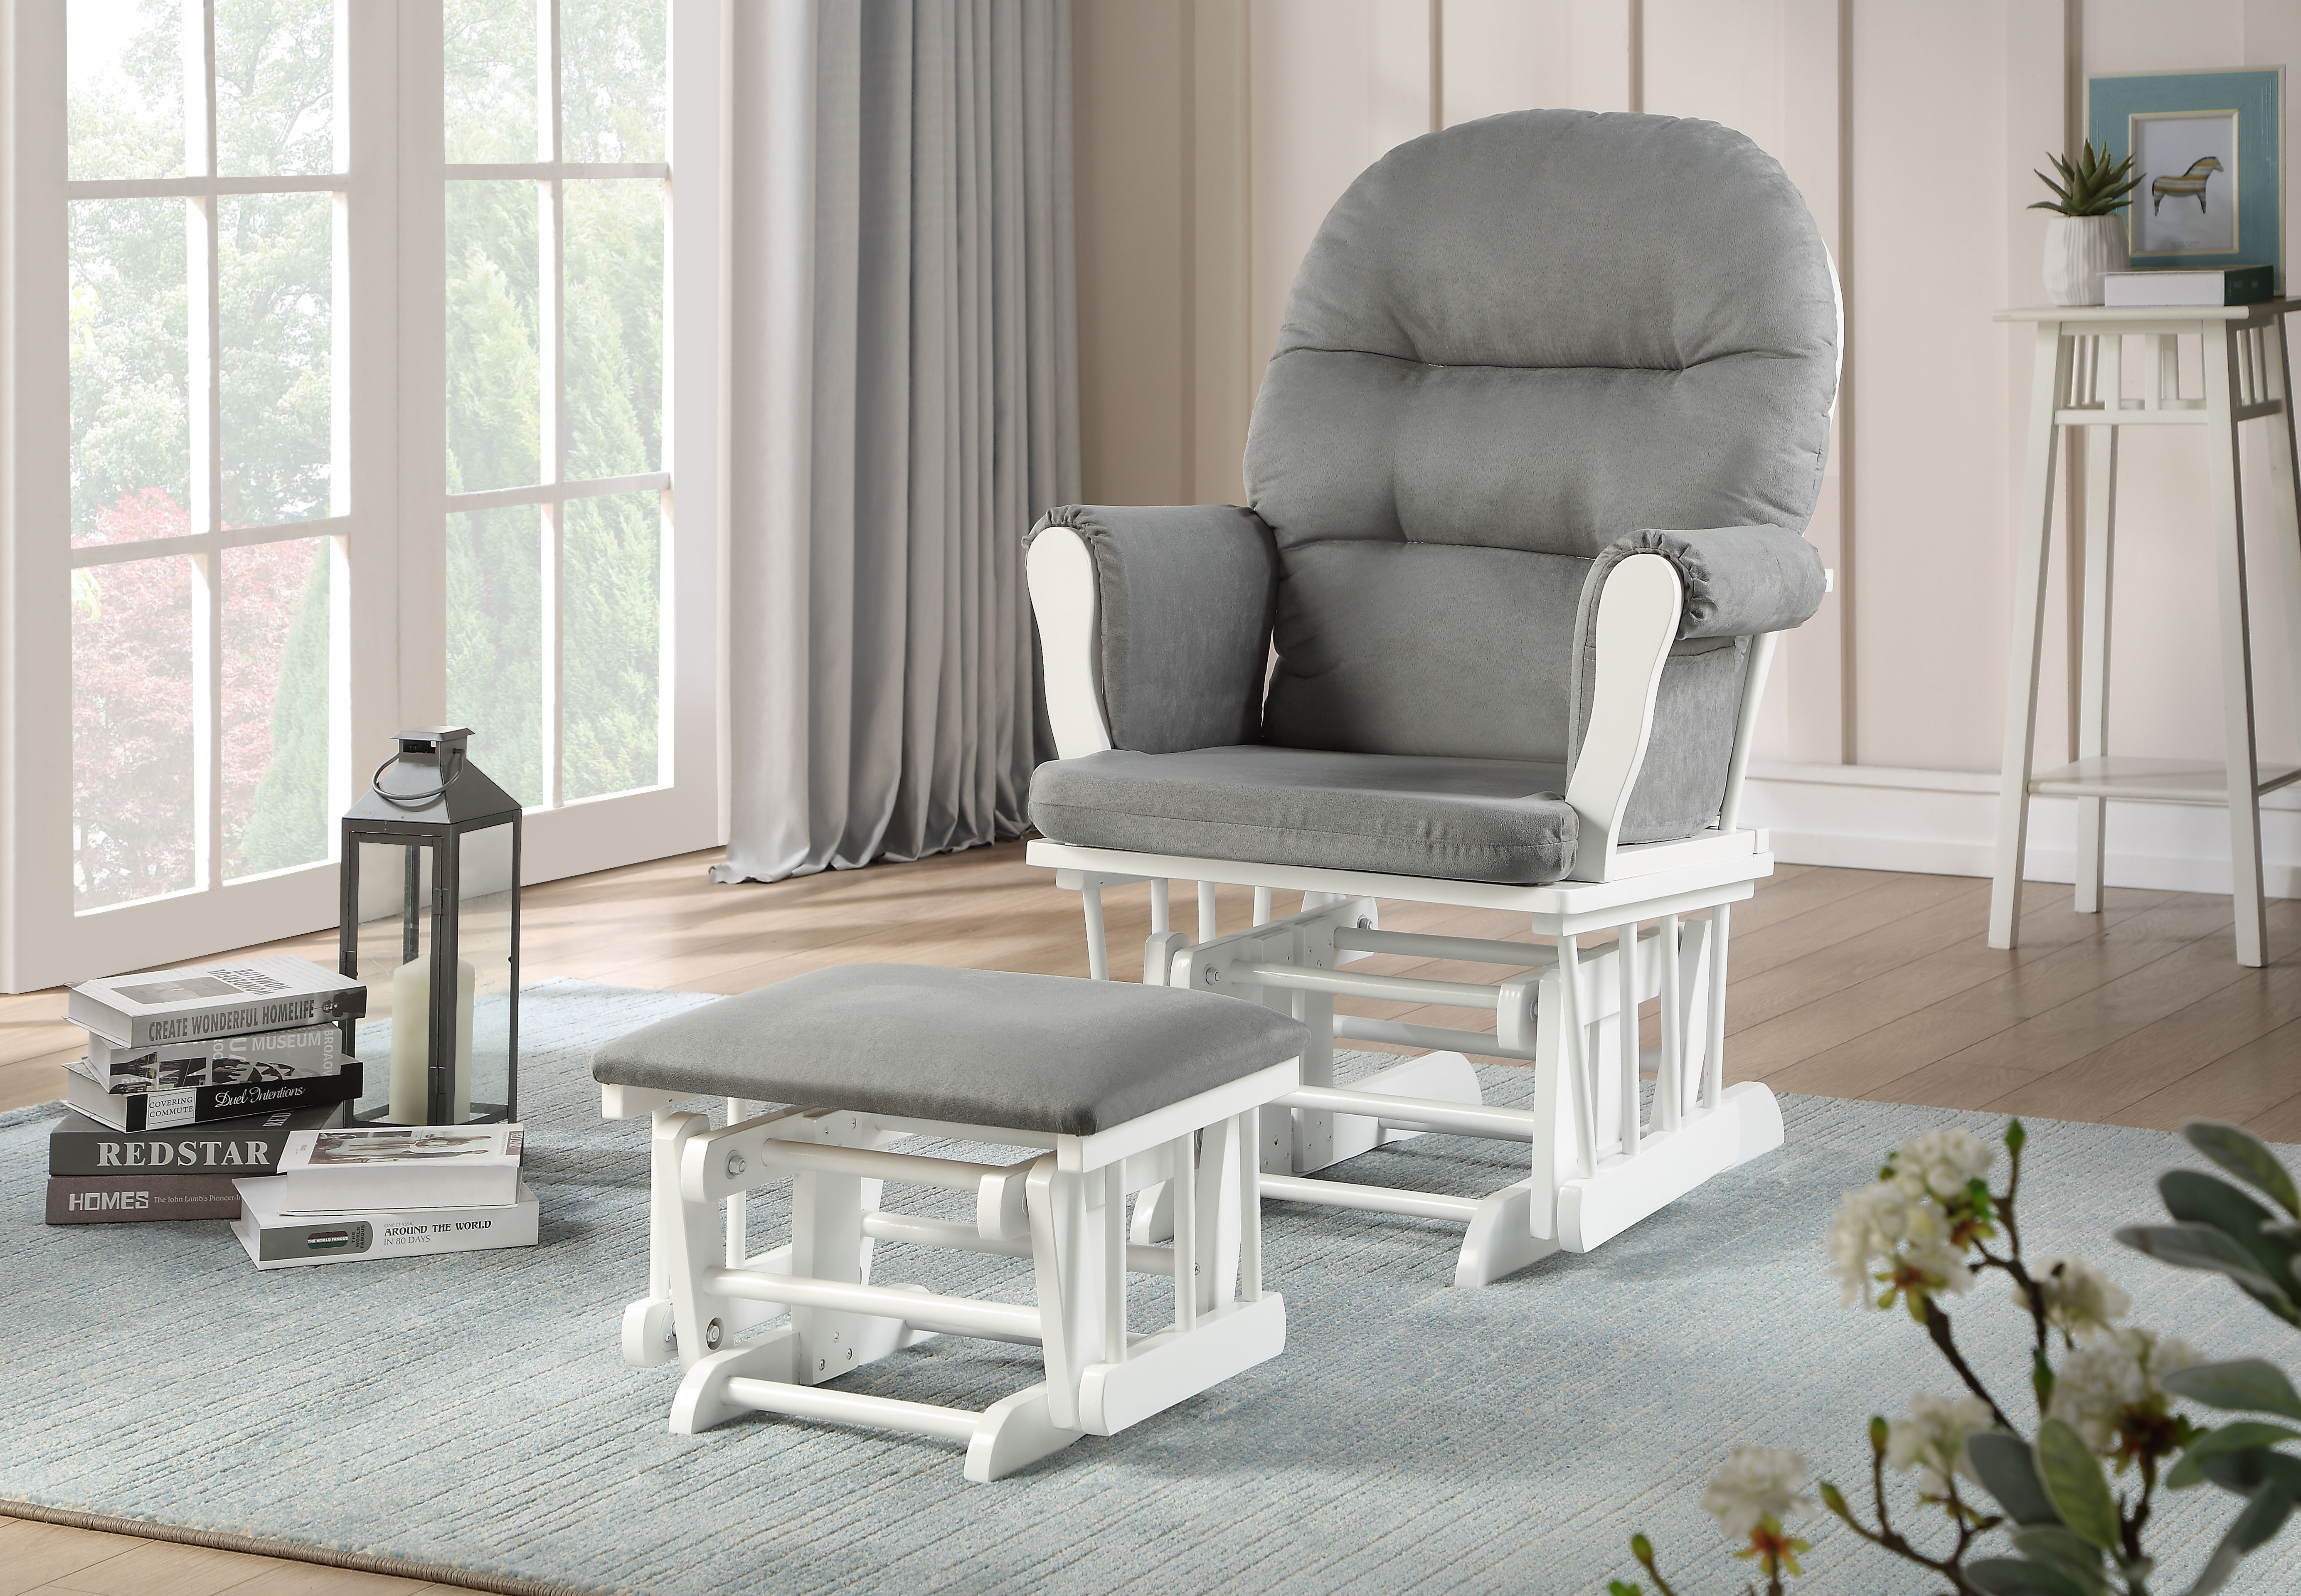 Glider Chair And Ottoman Combo White Grey 7082cb 15 1139